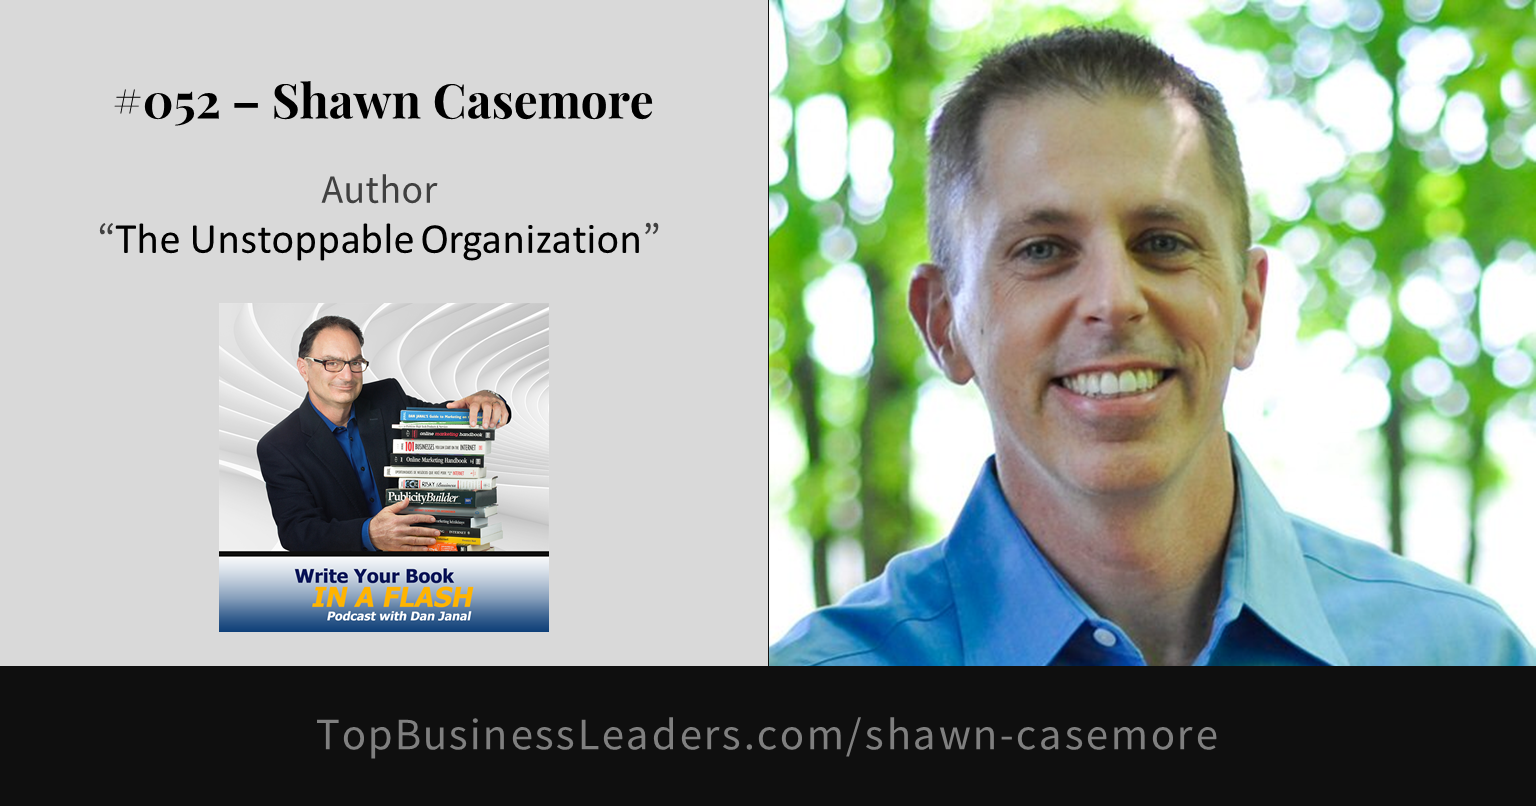 shawn-casemore-author-the-unstoppable-organization